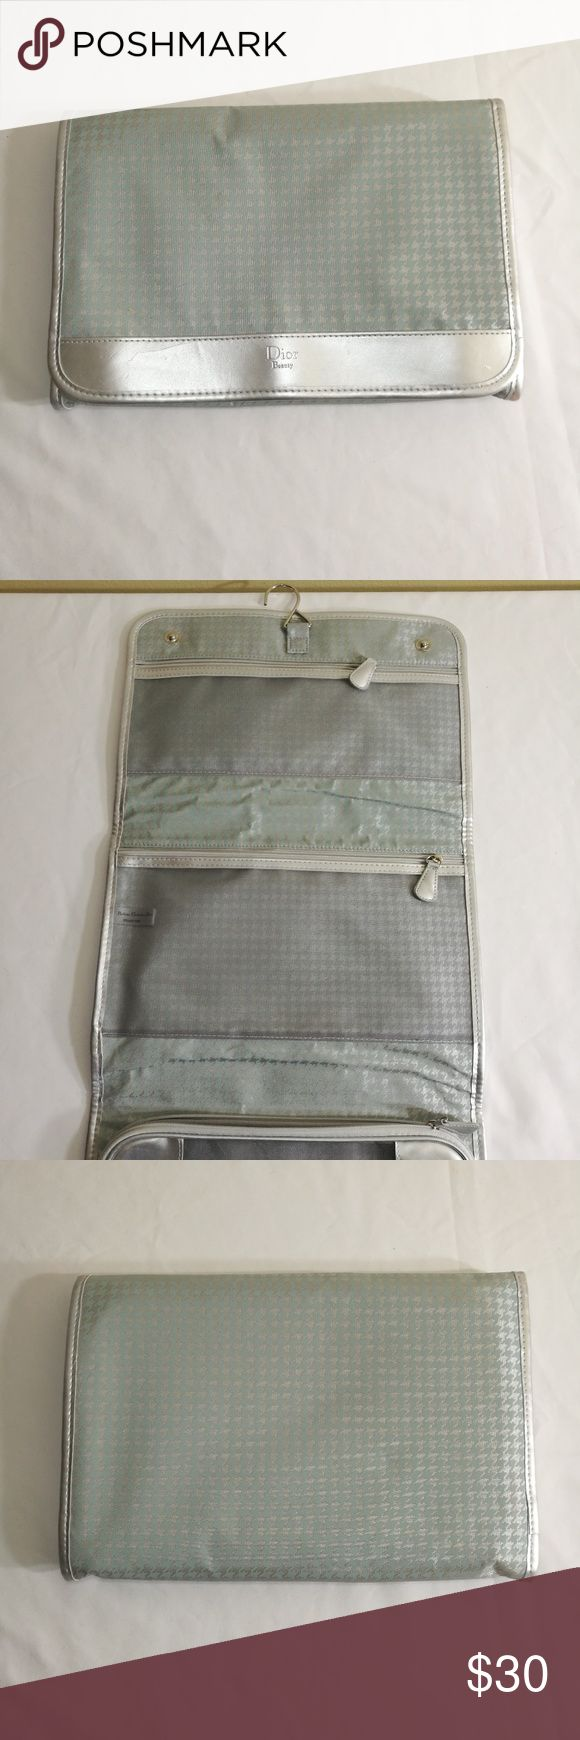 Christian Dior travel makeup case Baby blue and silver